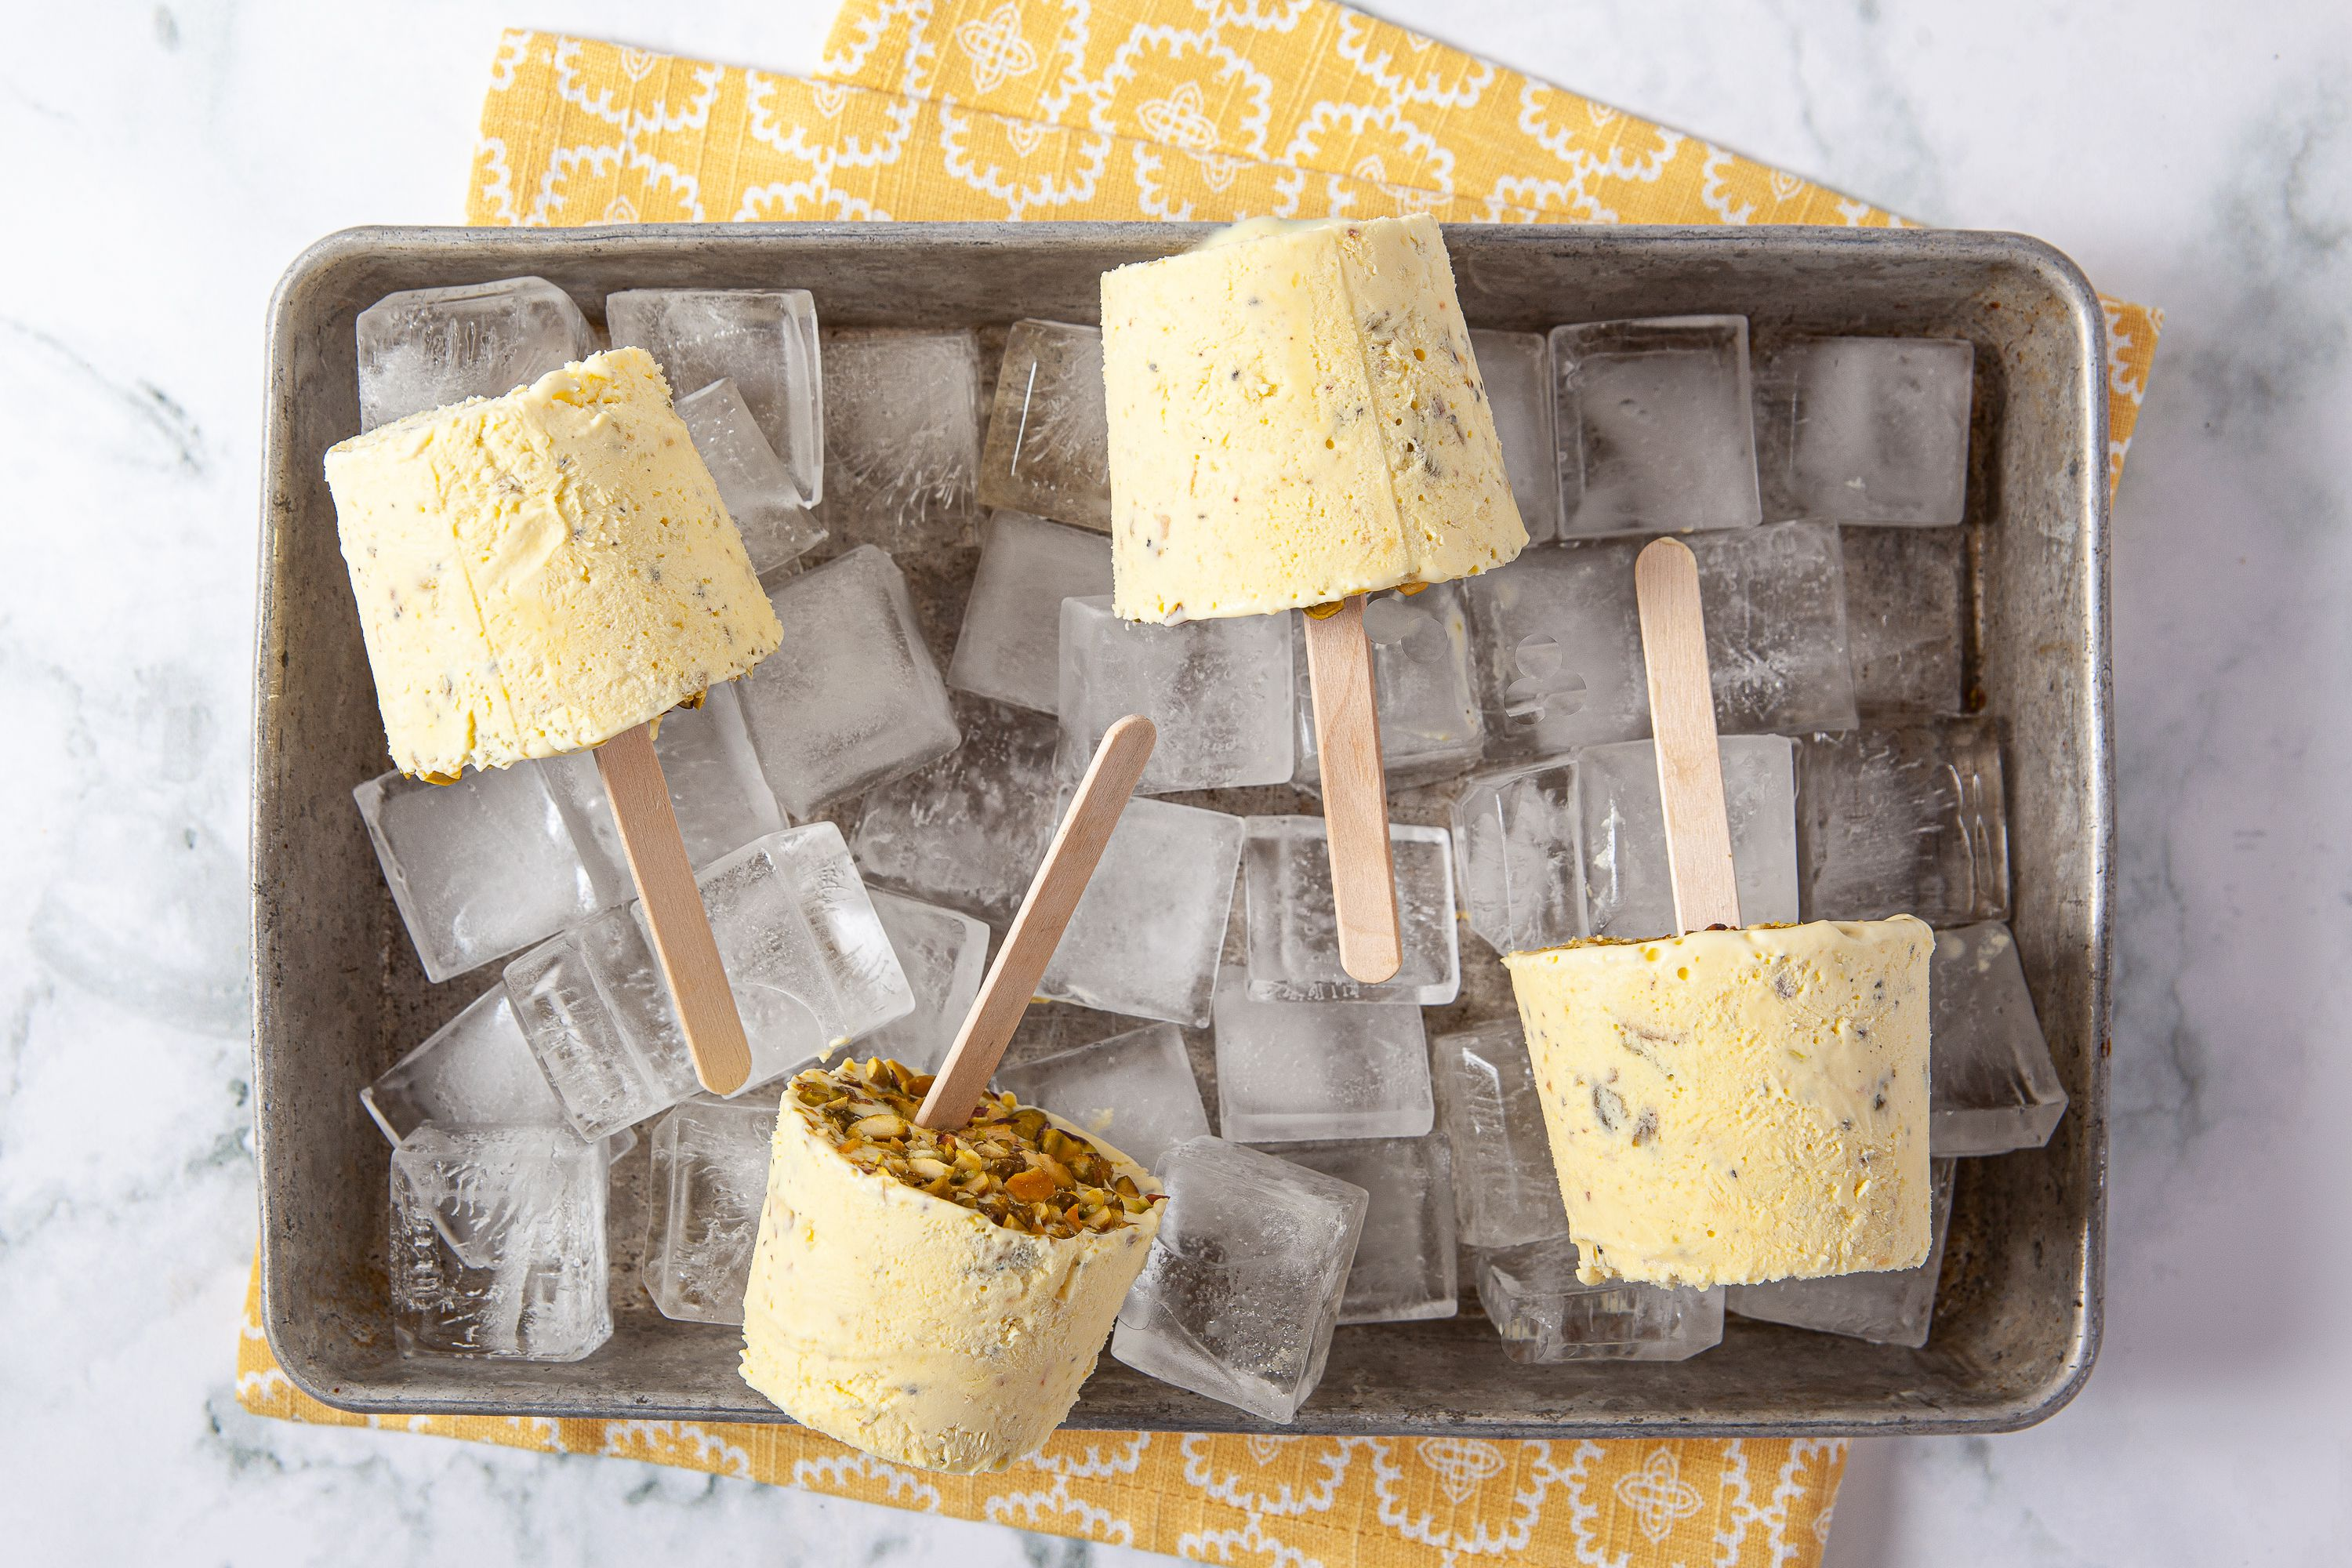 This Creamy Pistachio-Studded Kulfi Is a Delicious Summertime Treat